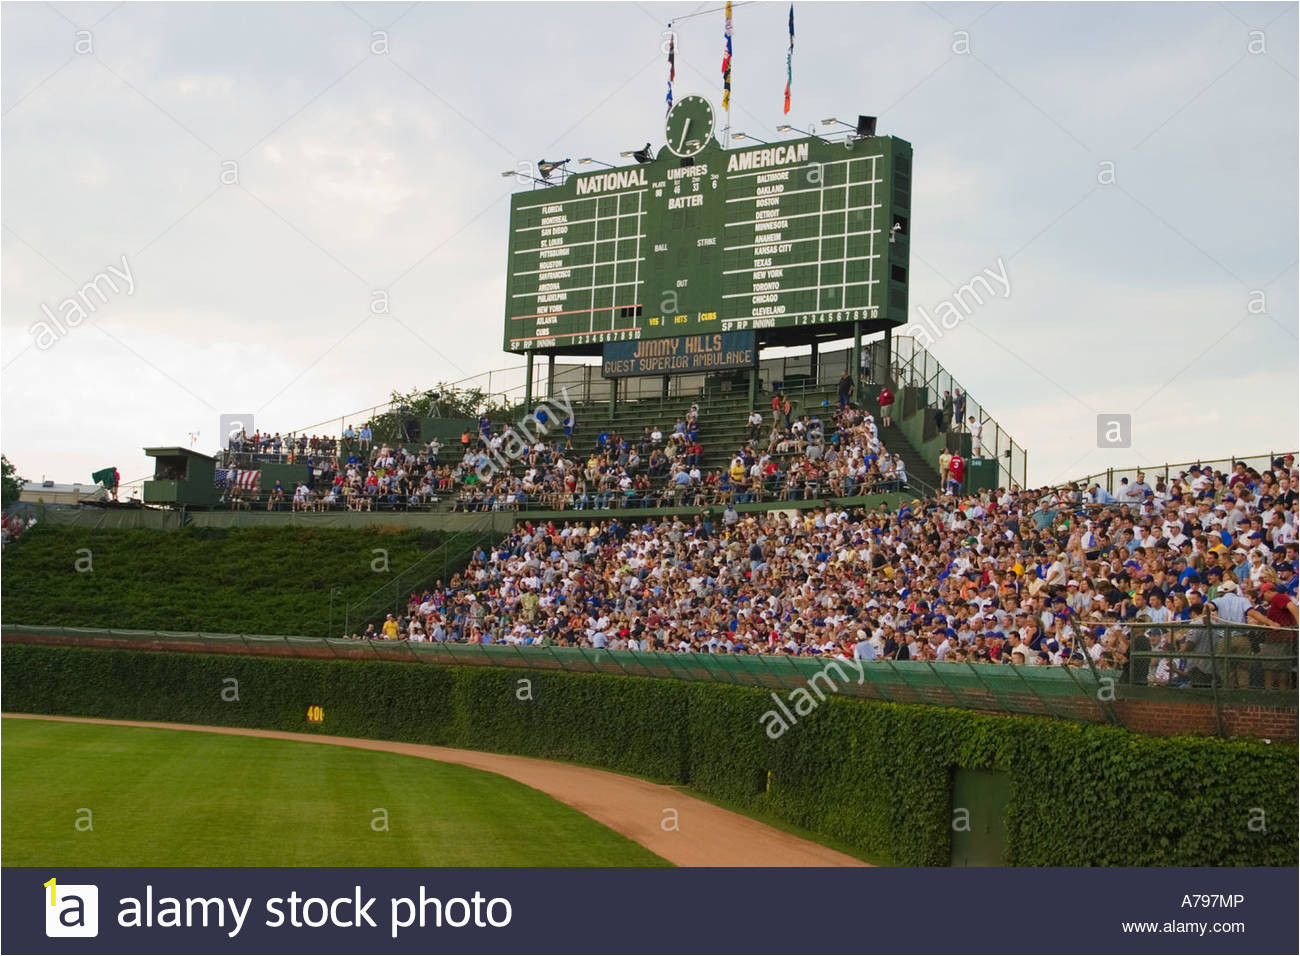 sports chicago illinois night game at wrigley field fans in bleachers A797MP